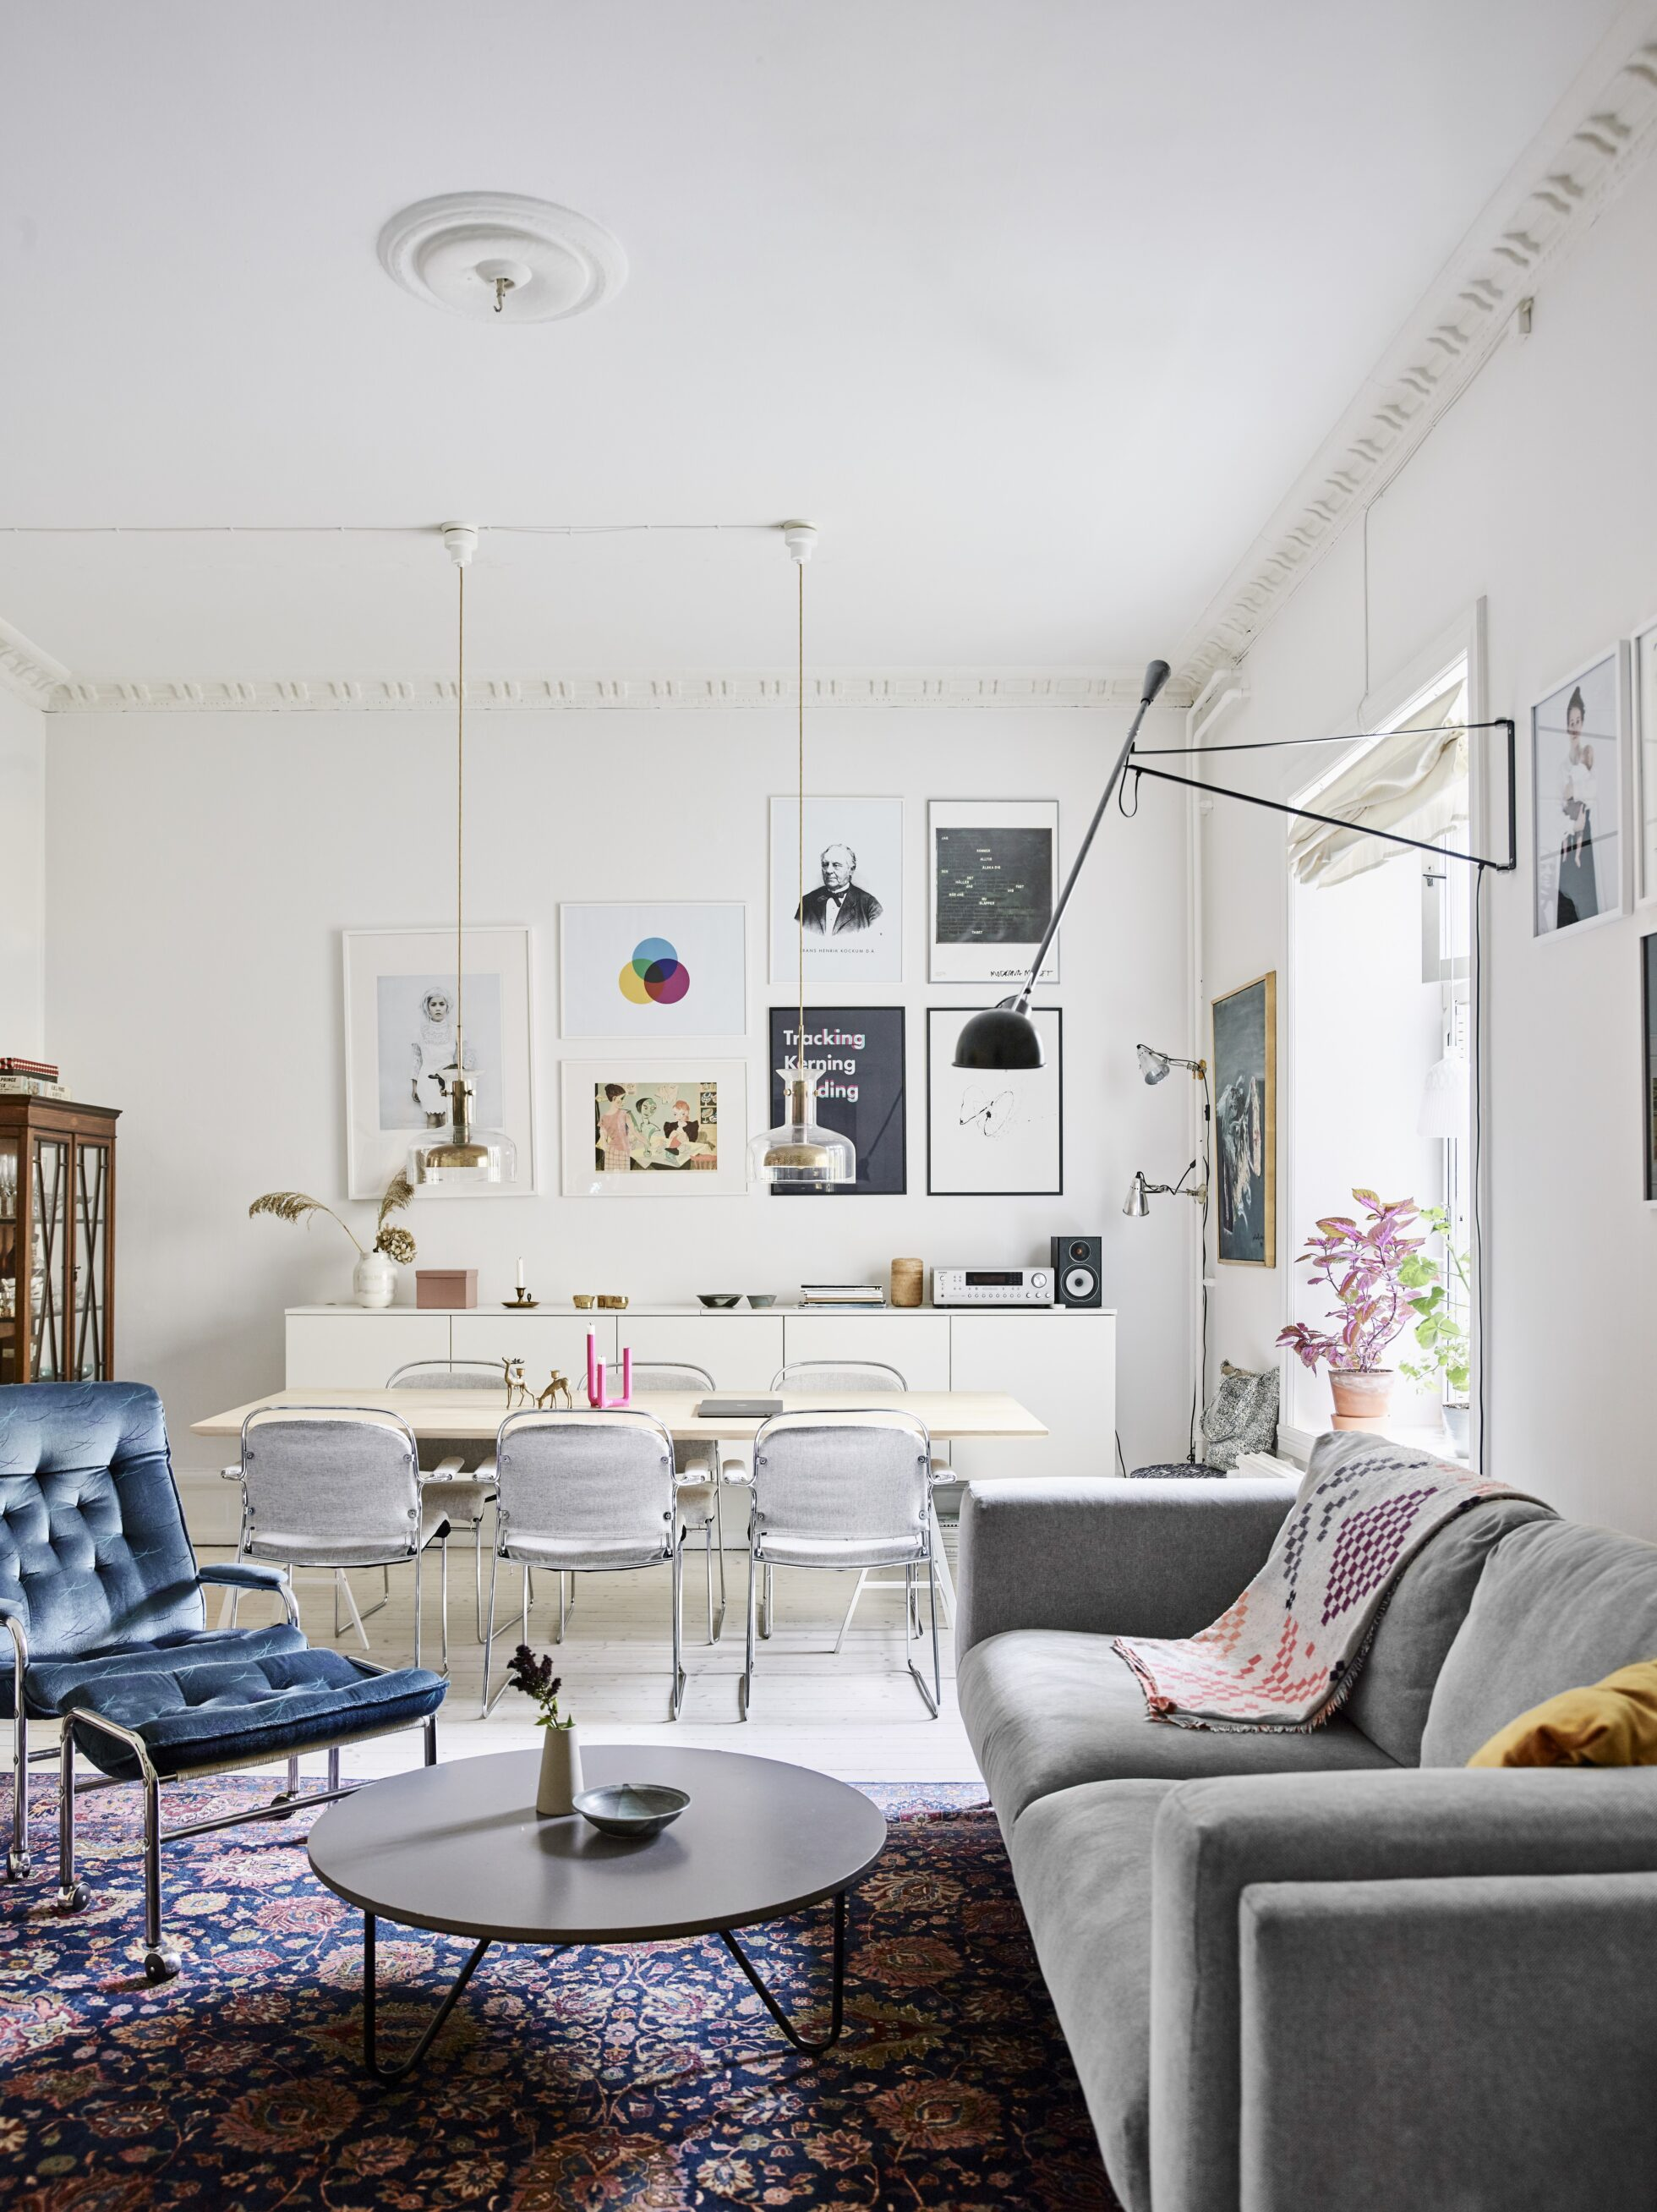 The Nordroom - A Bright And Creative Family Home in Malmö